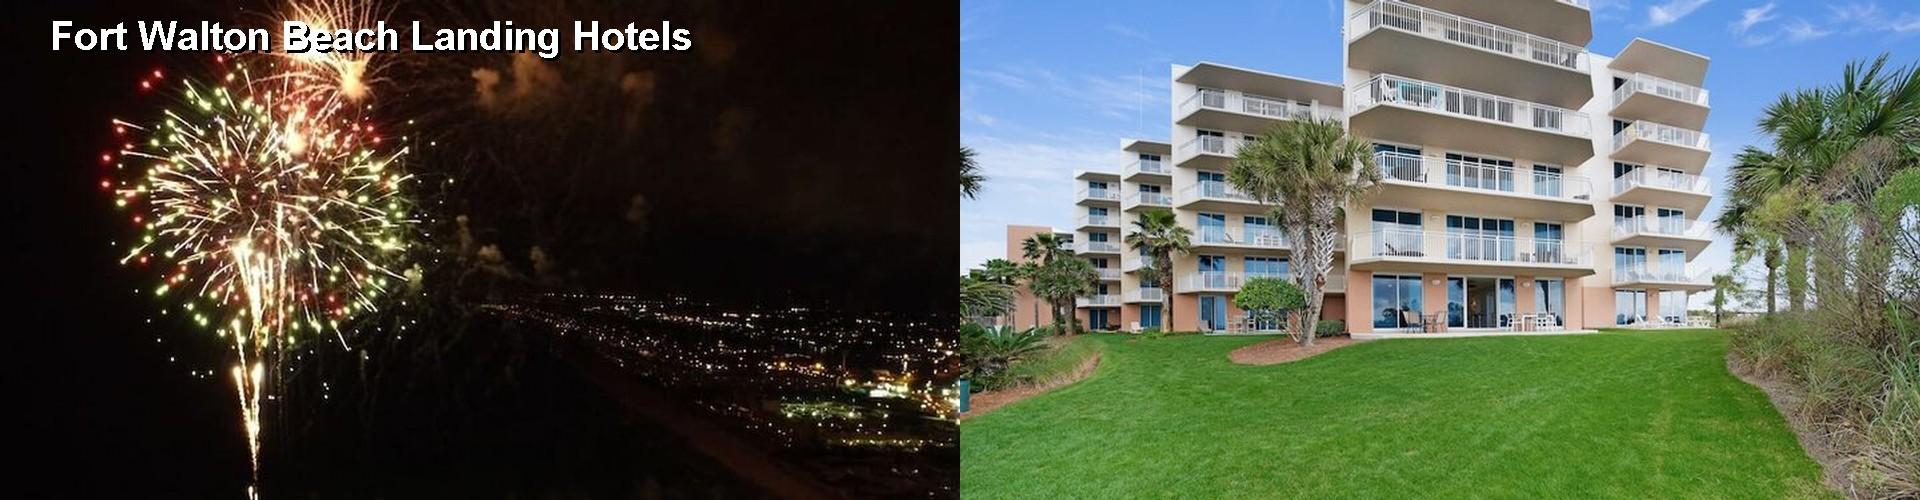 5 Best Hotels near Fort Walton Beach Landing